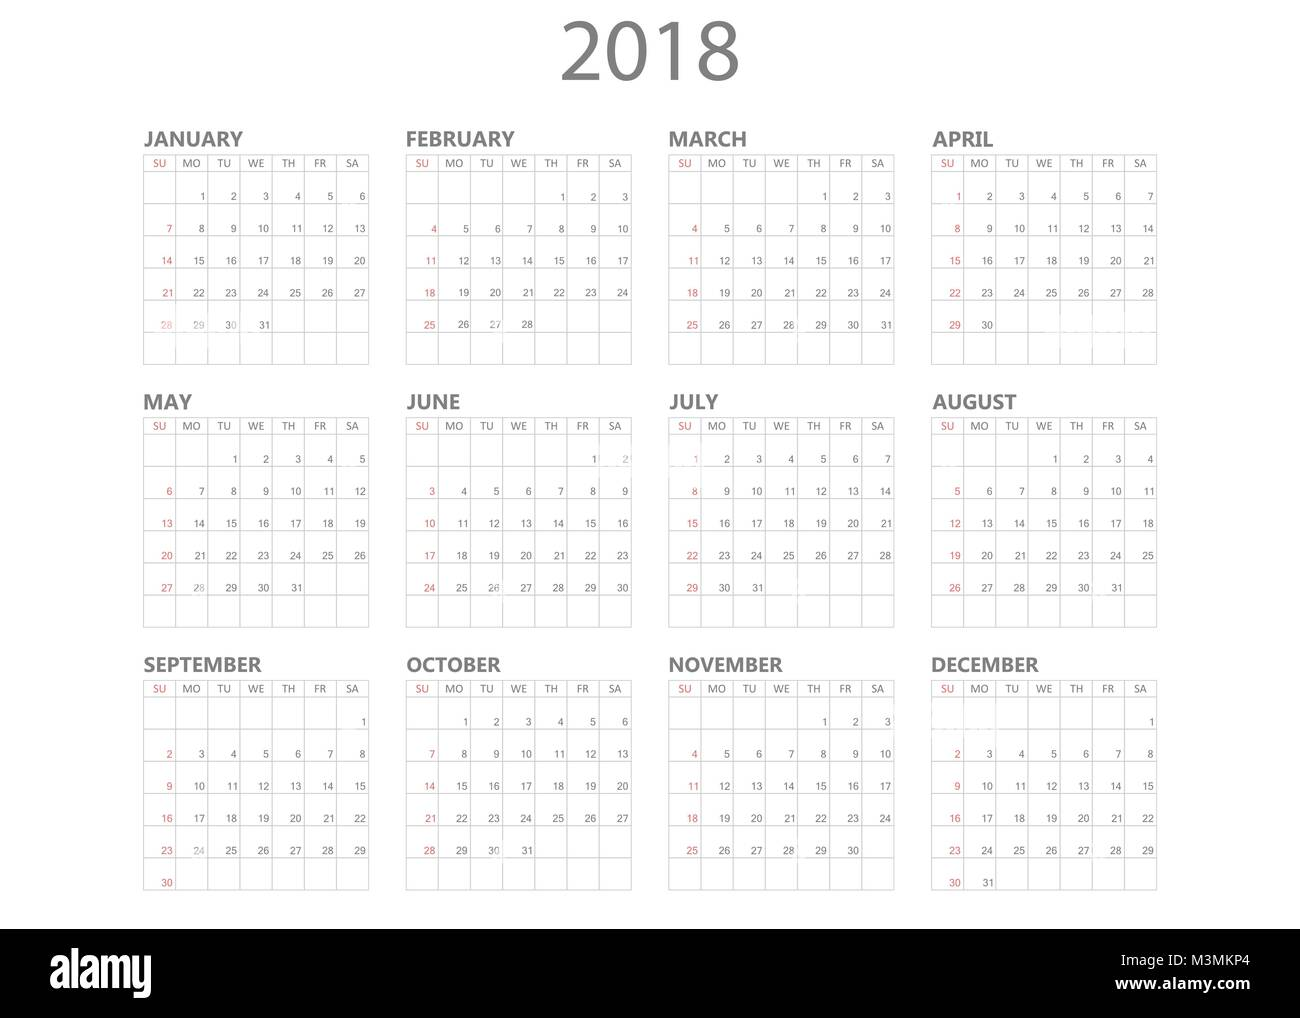 calendar 2018 year in simple style calendar planner design template week starts on sunday